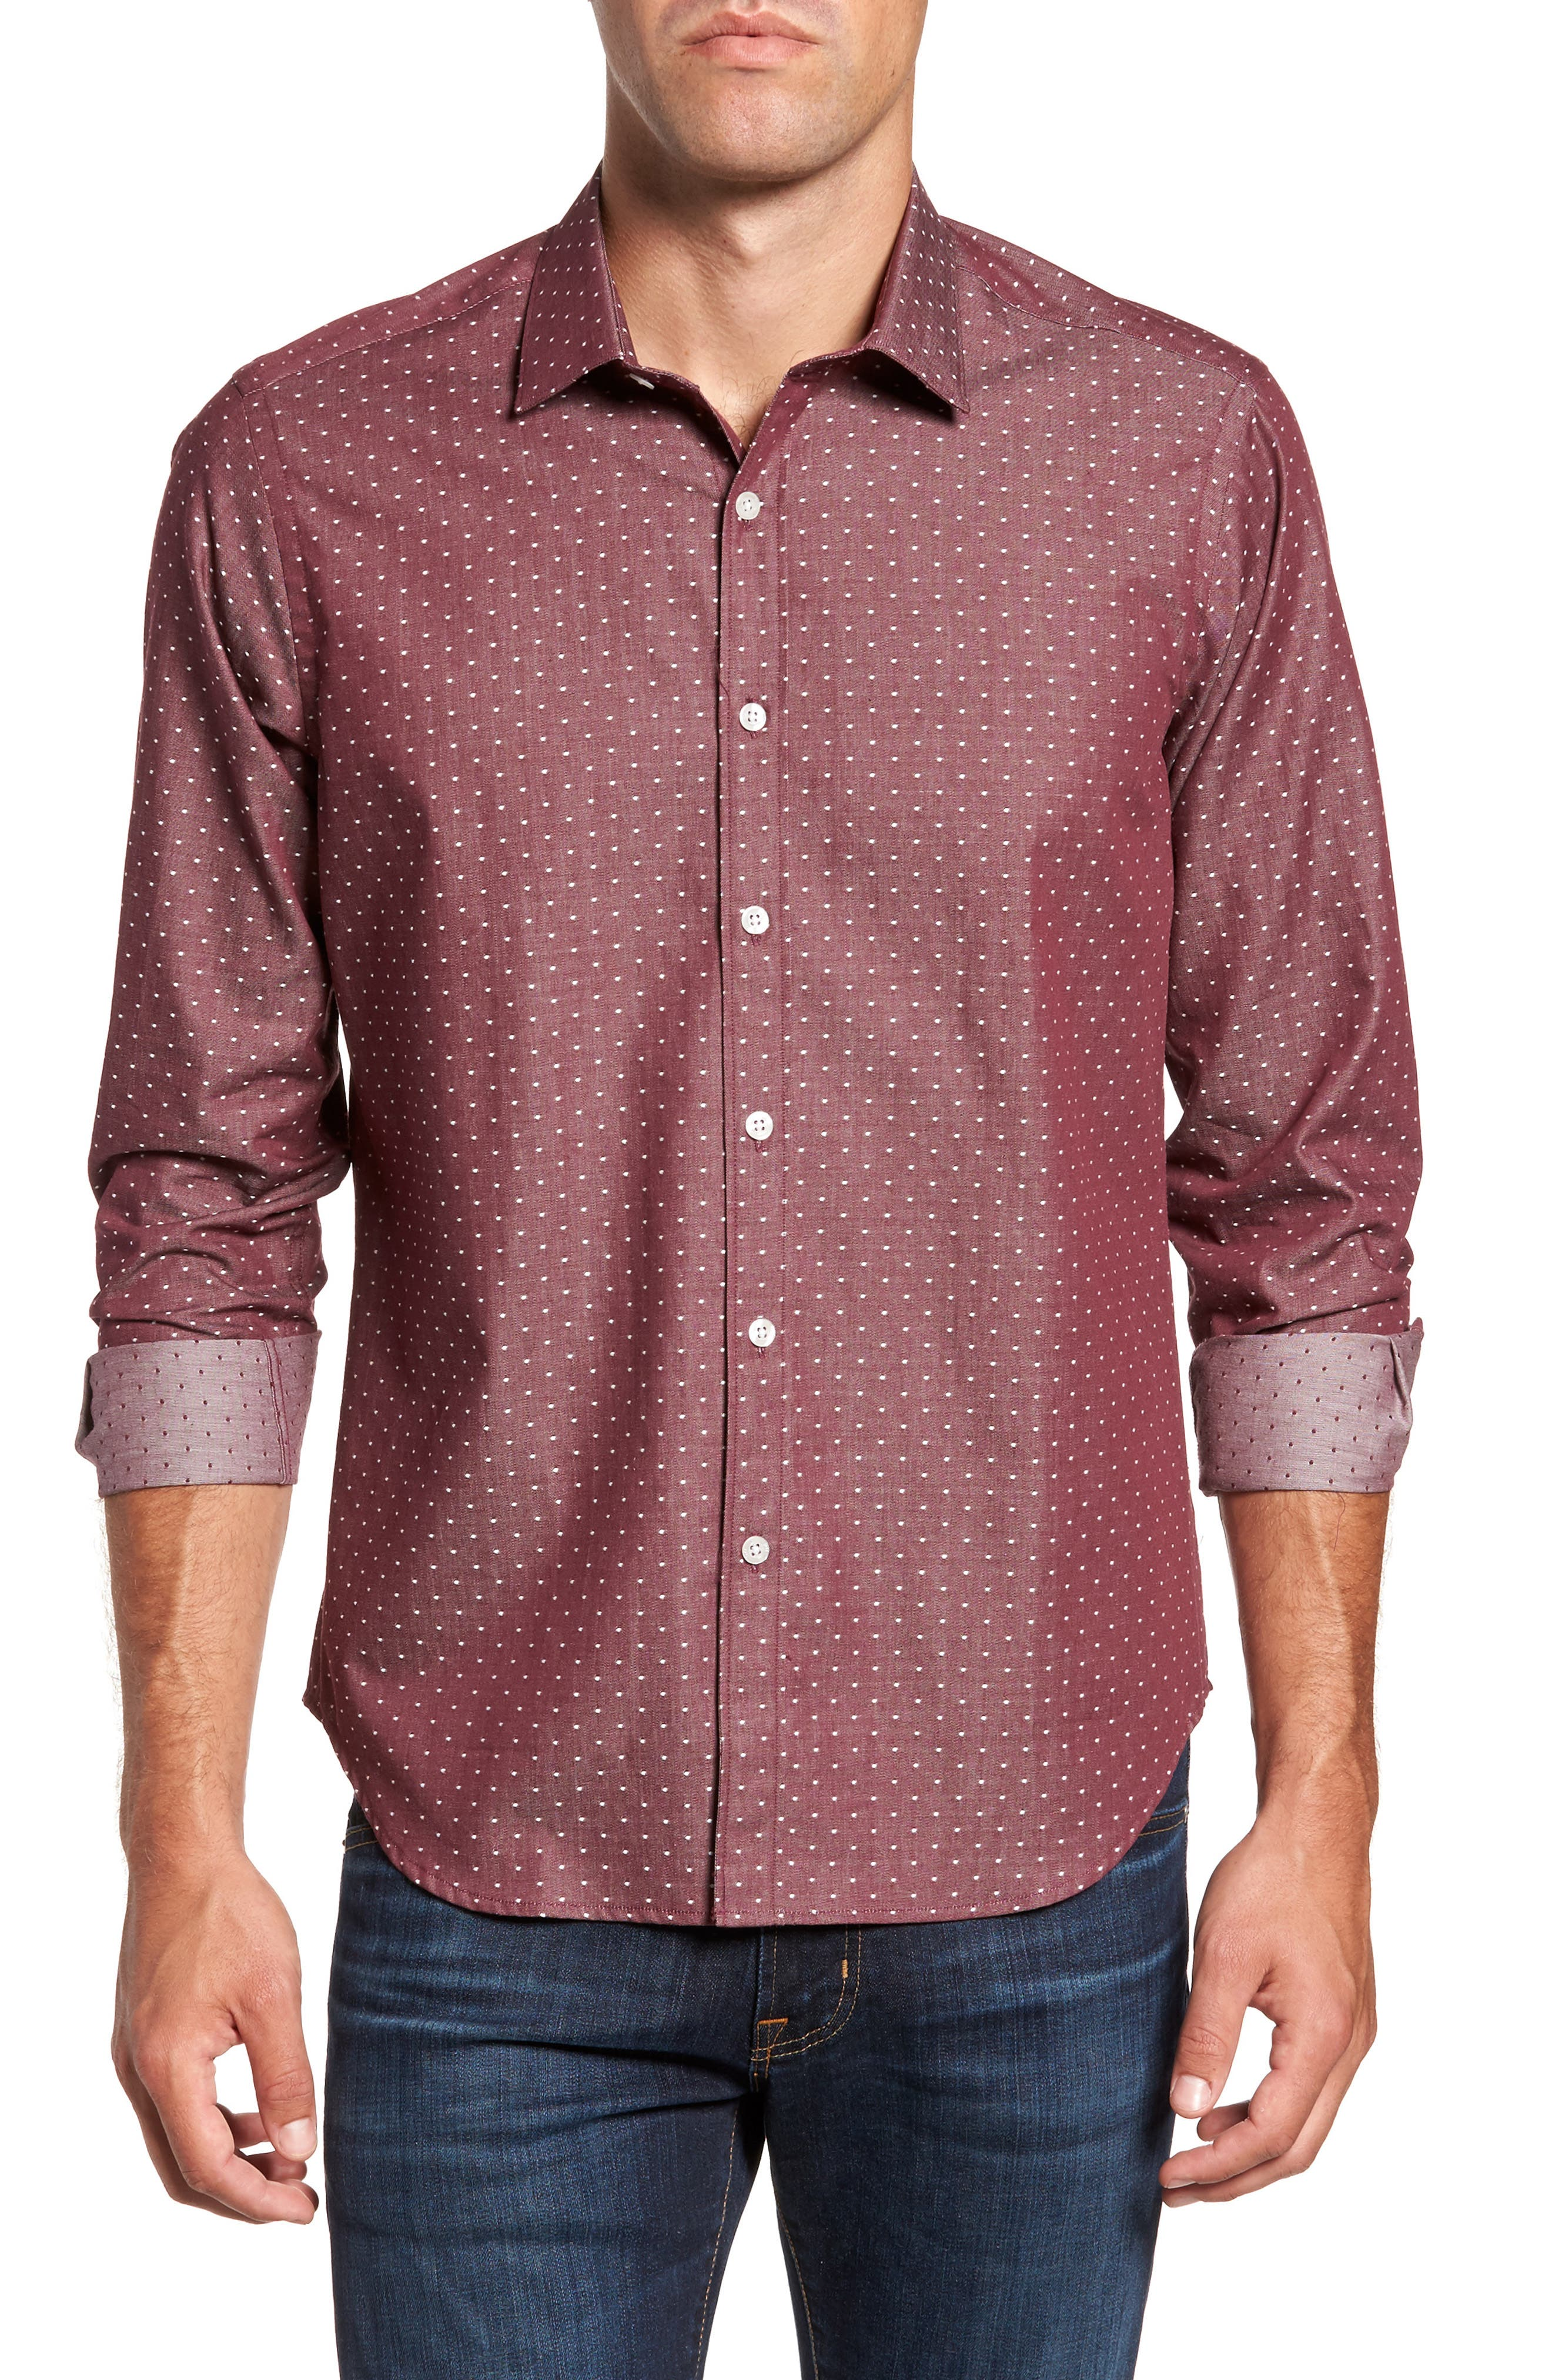 Alternate Image 1 Selected - Jeff Slim Fit Dot Print Sport Shirt